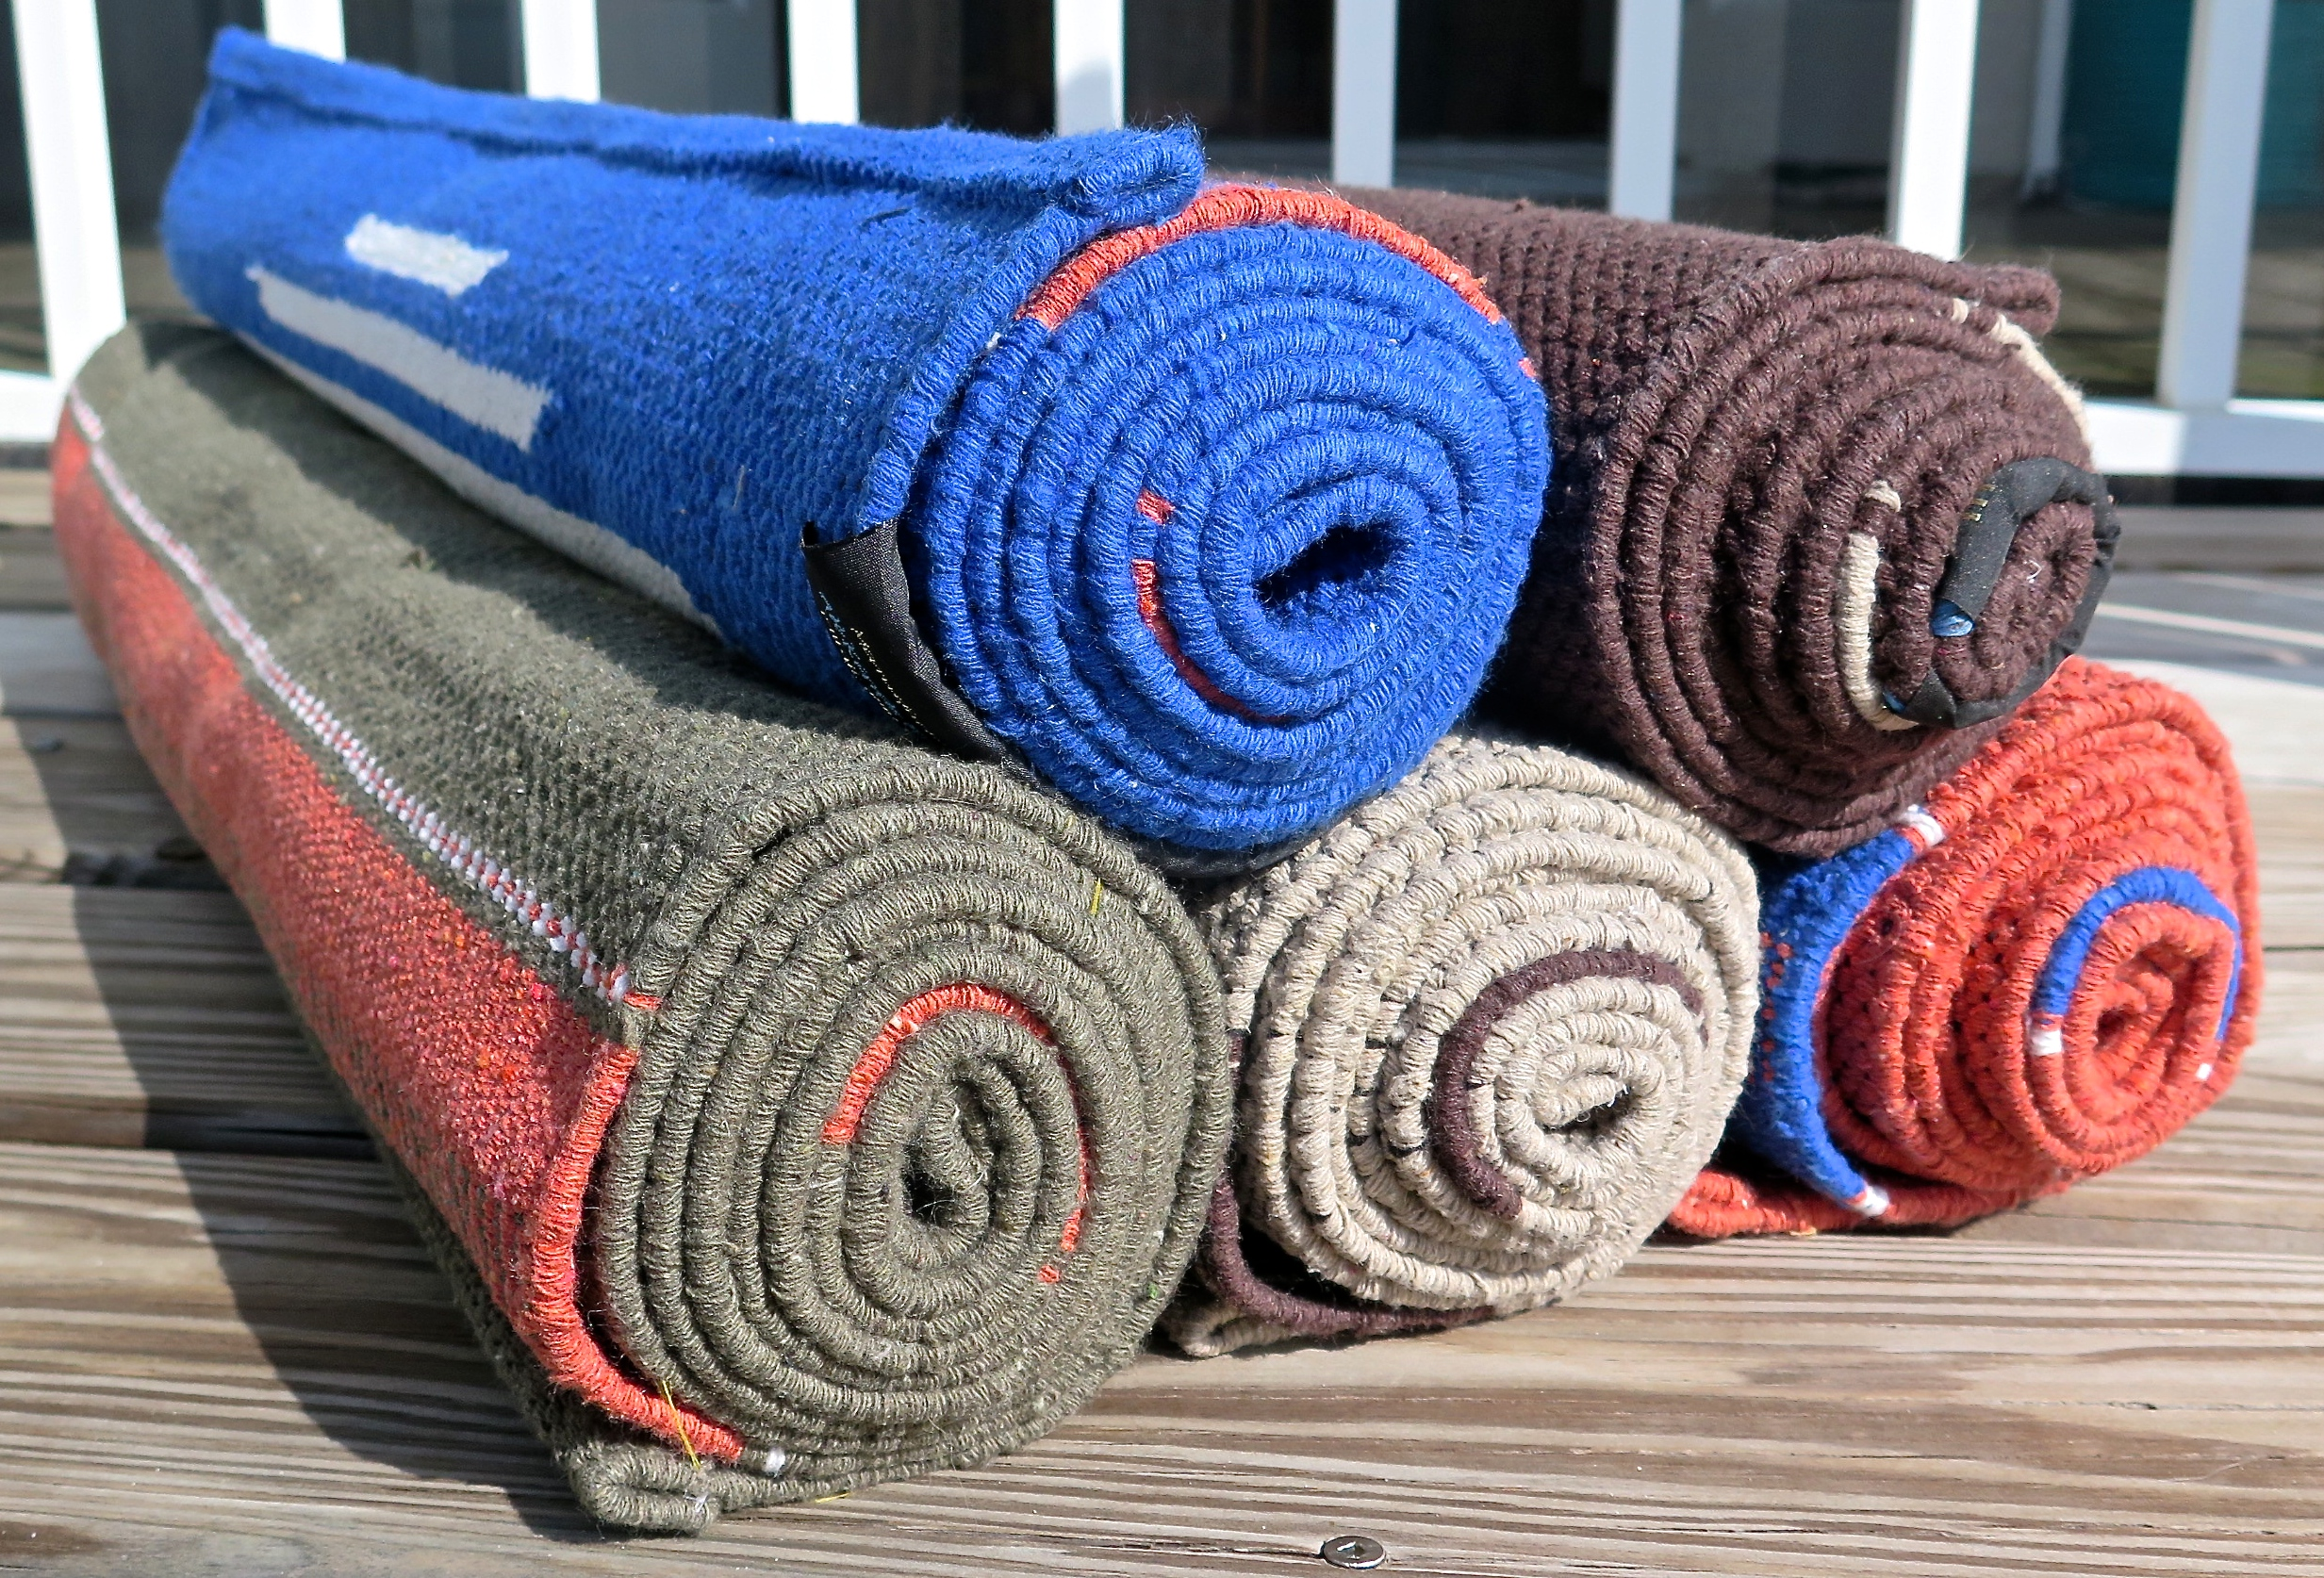 Looking for an alternative to your traditional yoga mat? Check out these yoga rugs from India!